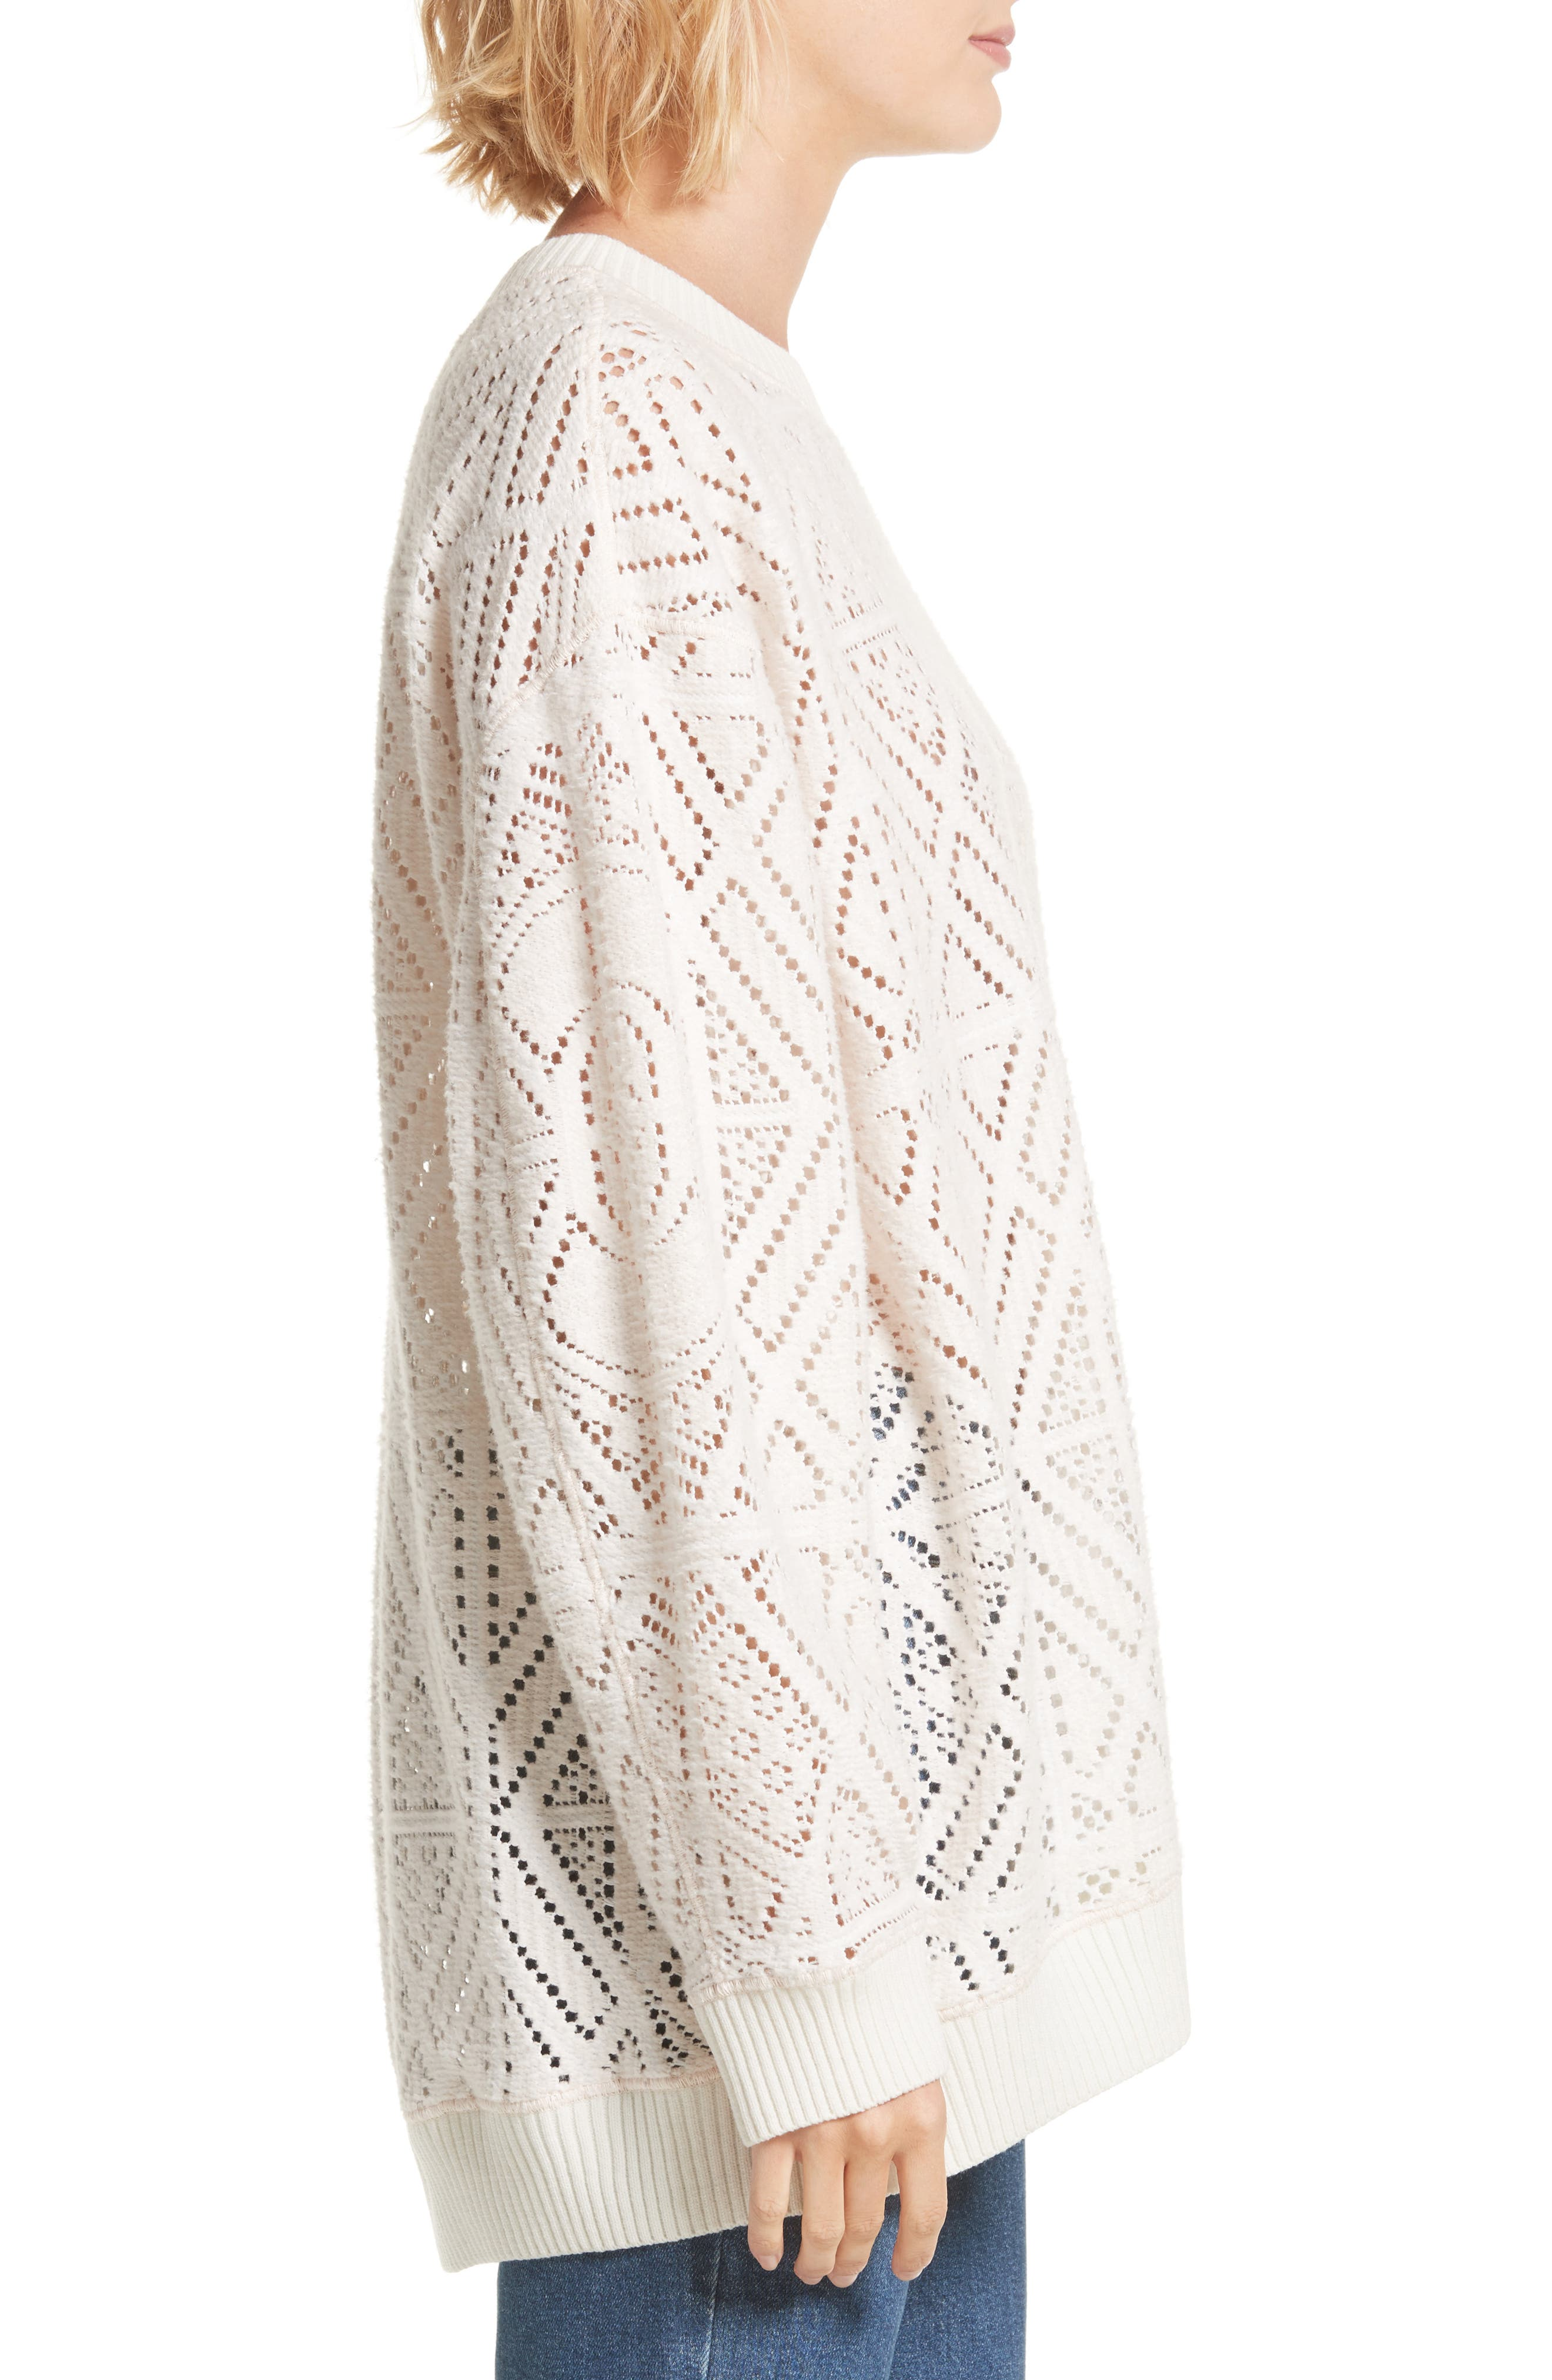 Lace Knit Sweater,                             Alternate thumbnail 3, color,                             901